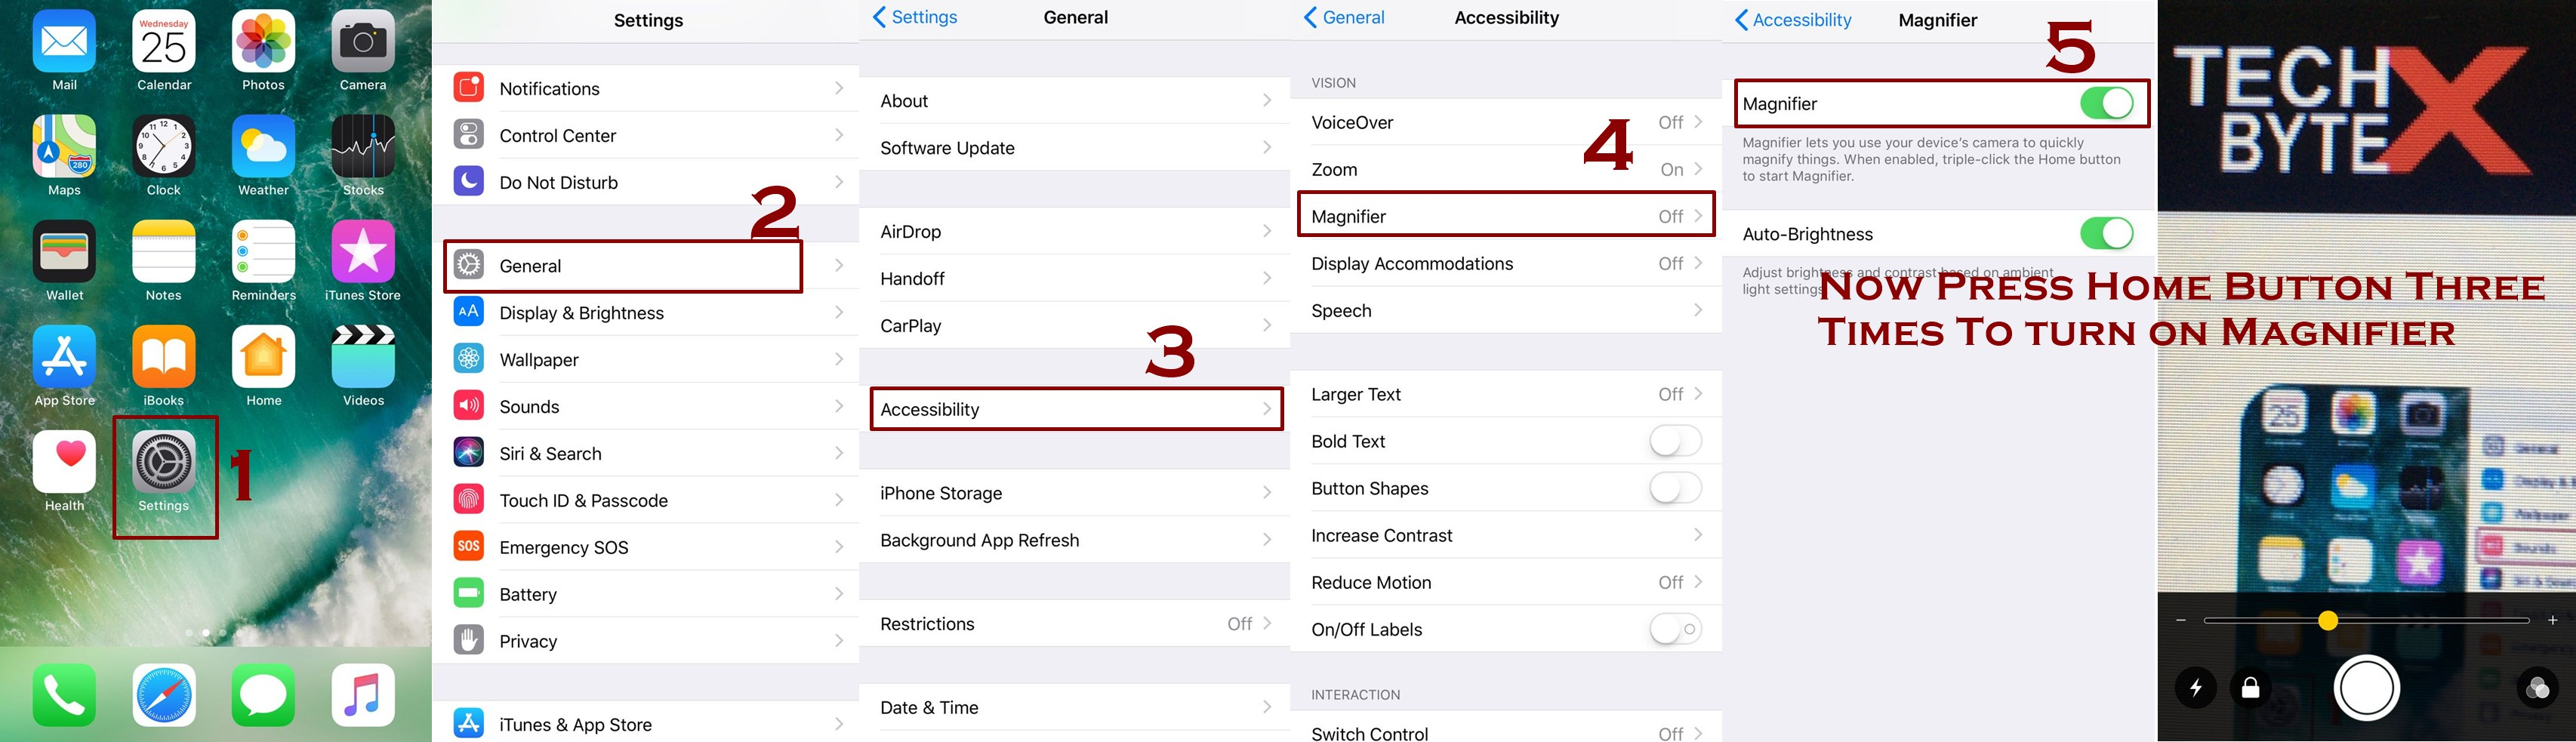 how to enable magnifier on iphone - Everything about Magnifier on iPhone